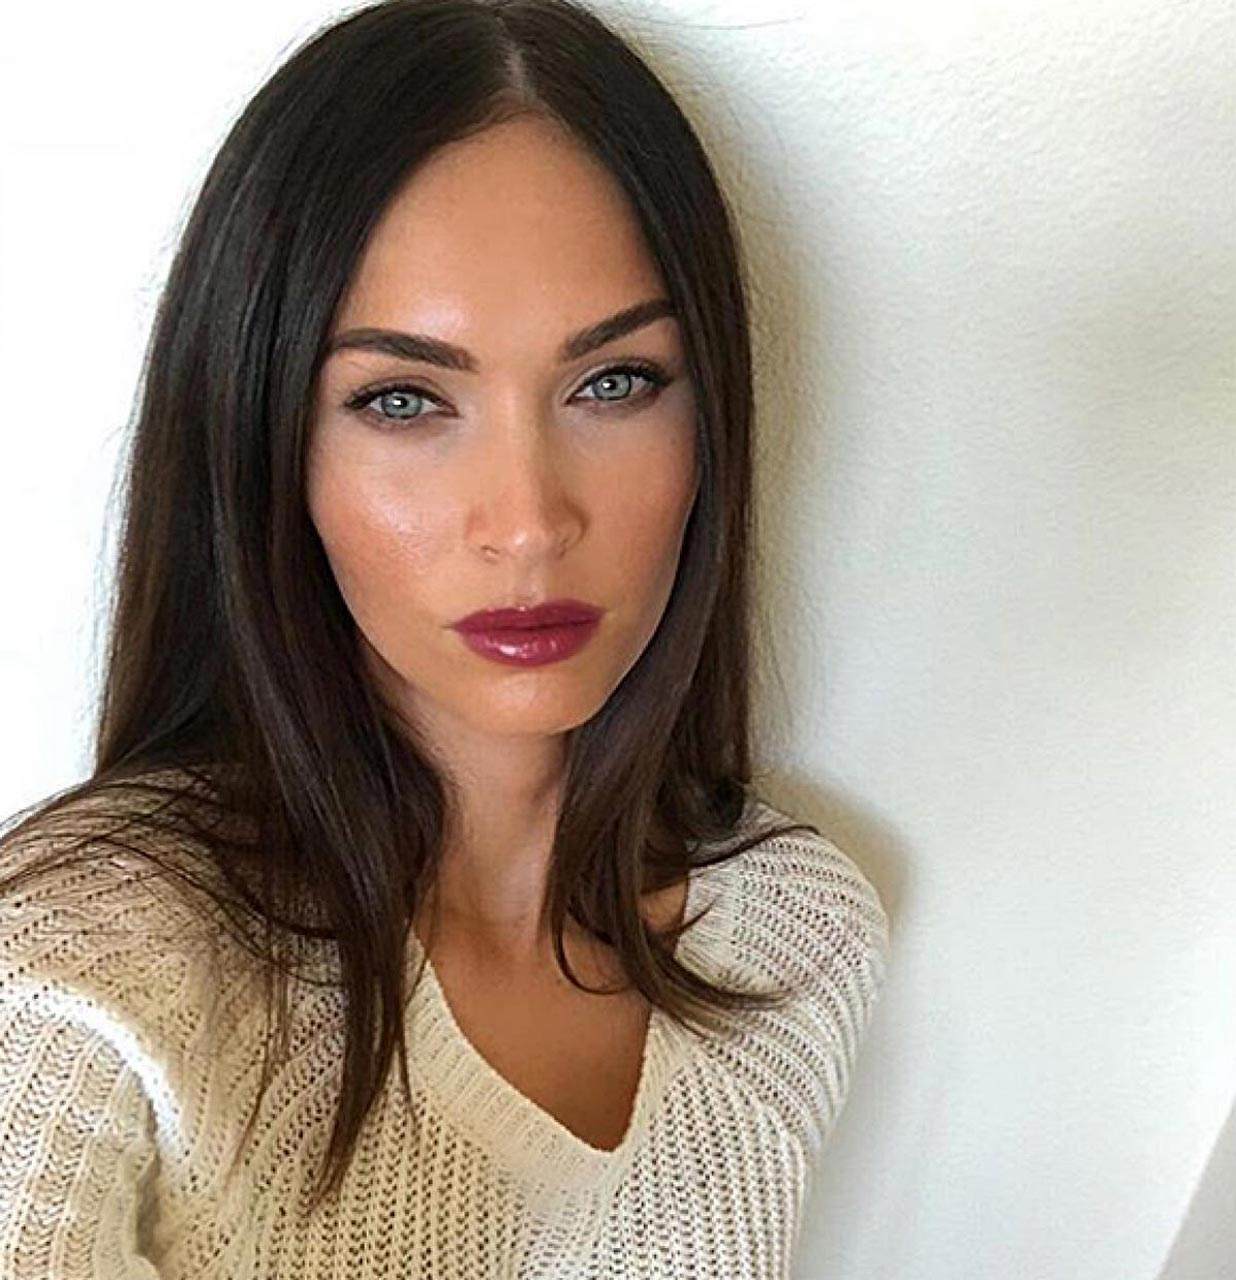 Megan Fox Nude Leaked Photos and PORN Video 2020 - Scandal